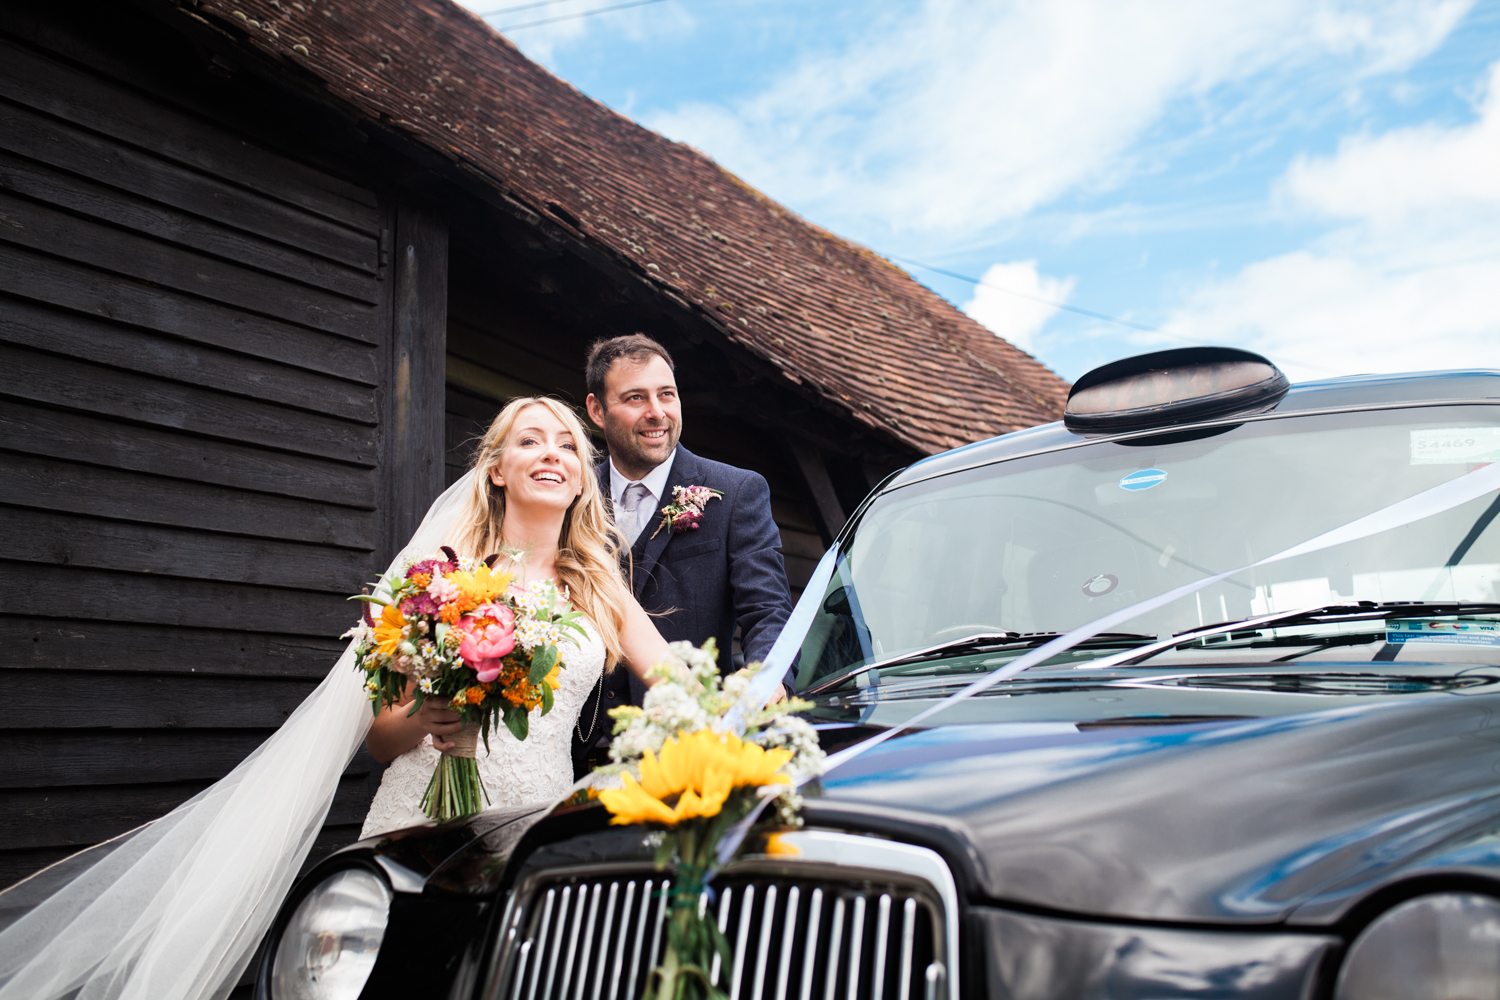 Bride and Groom - black cab shot